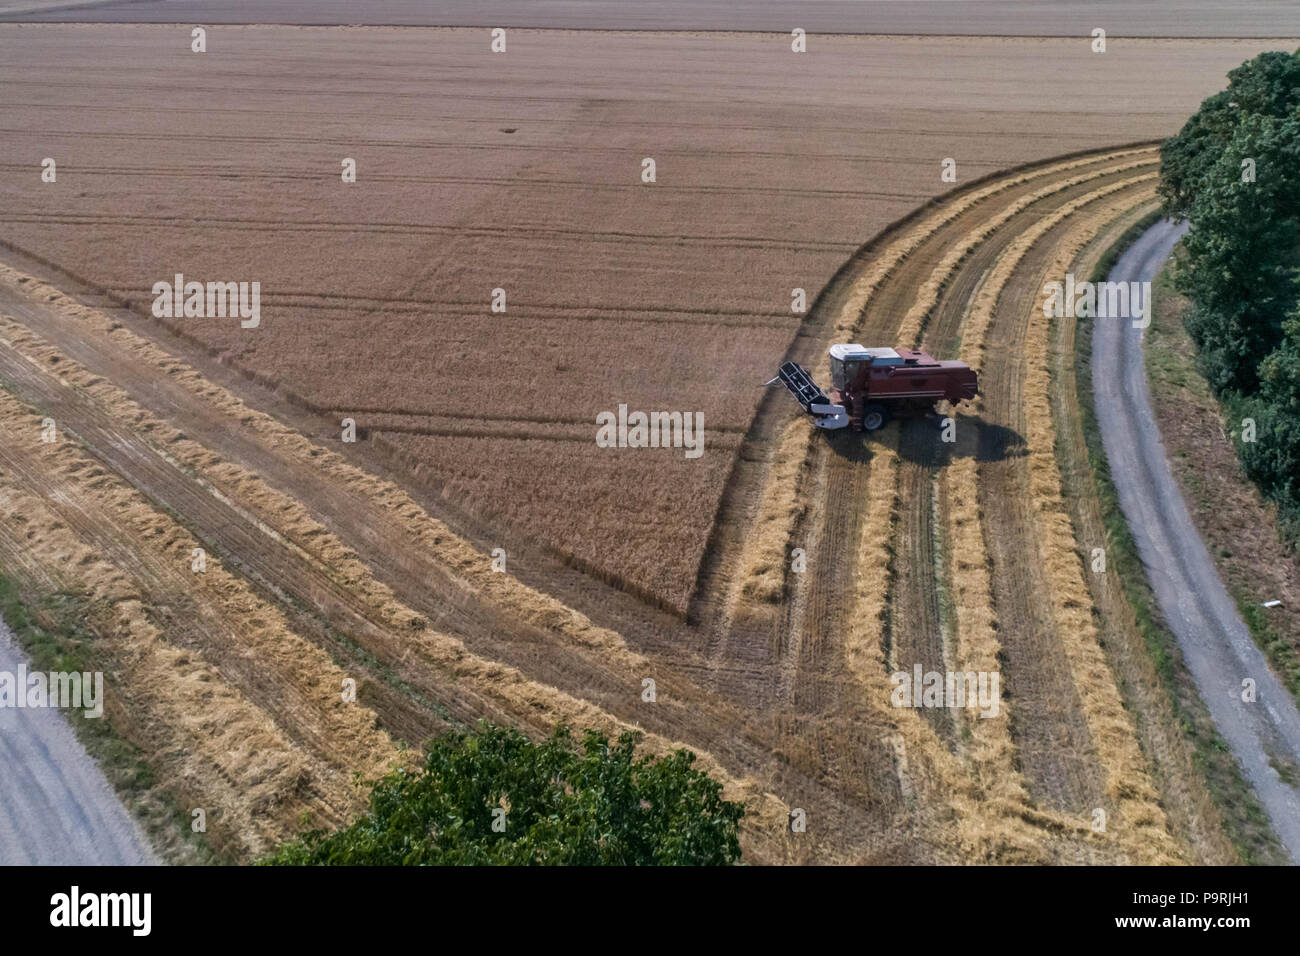 Aerial view on the combine harvester working on the large wheat field in Germany - Stock Image